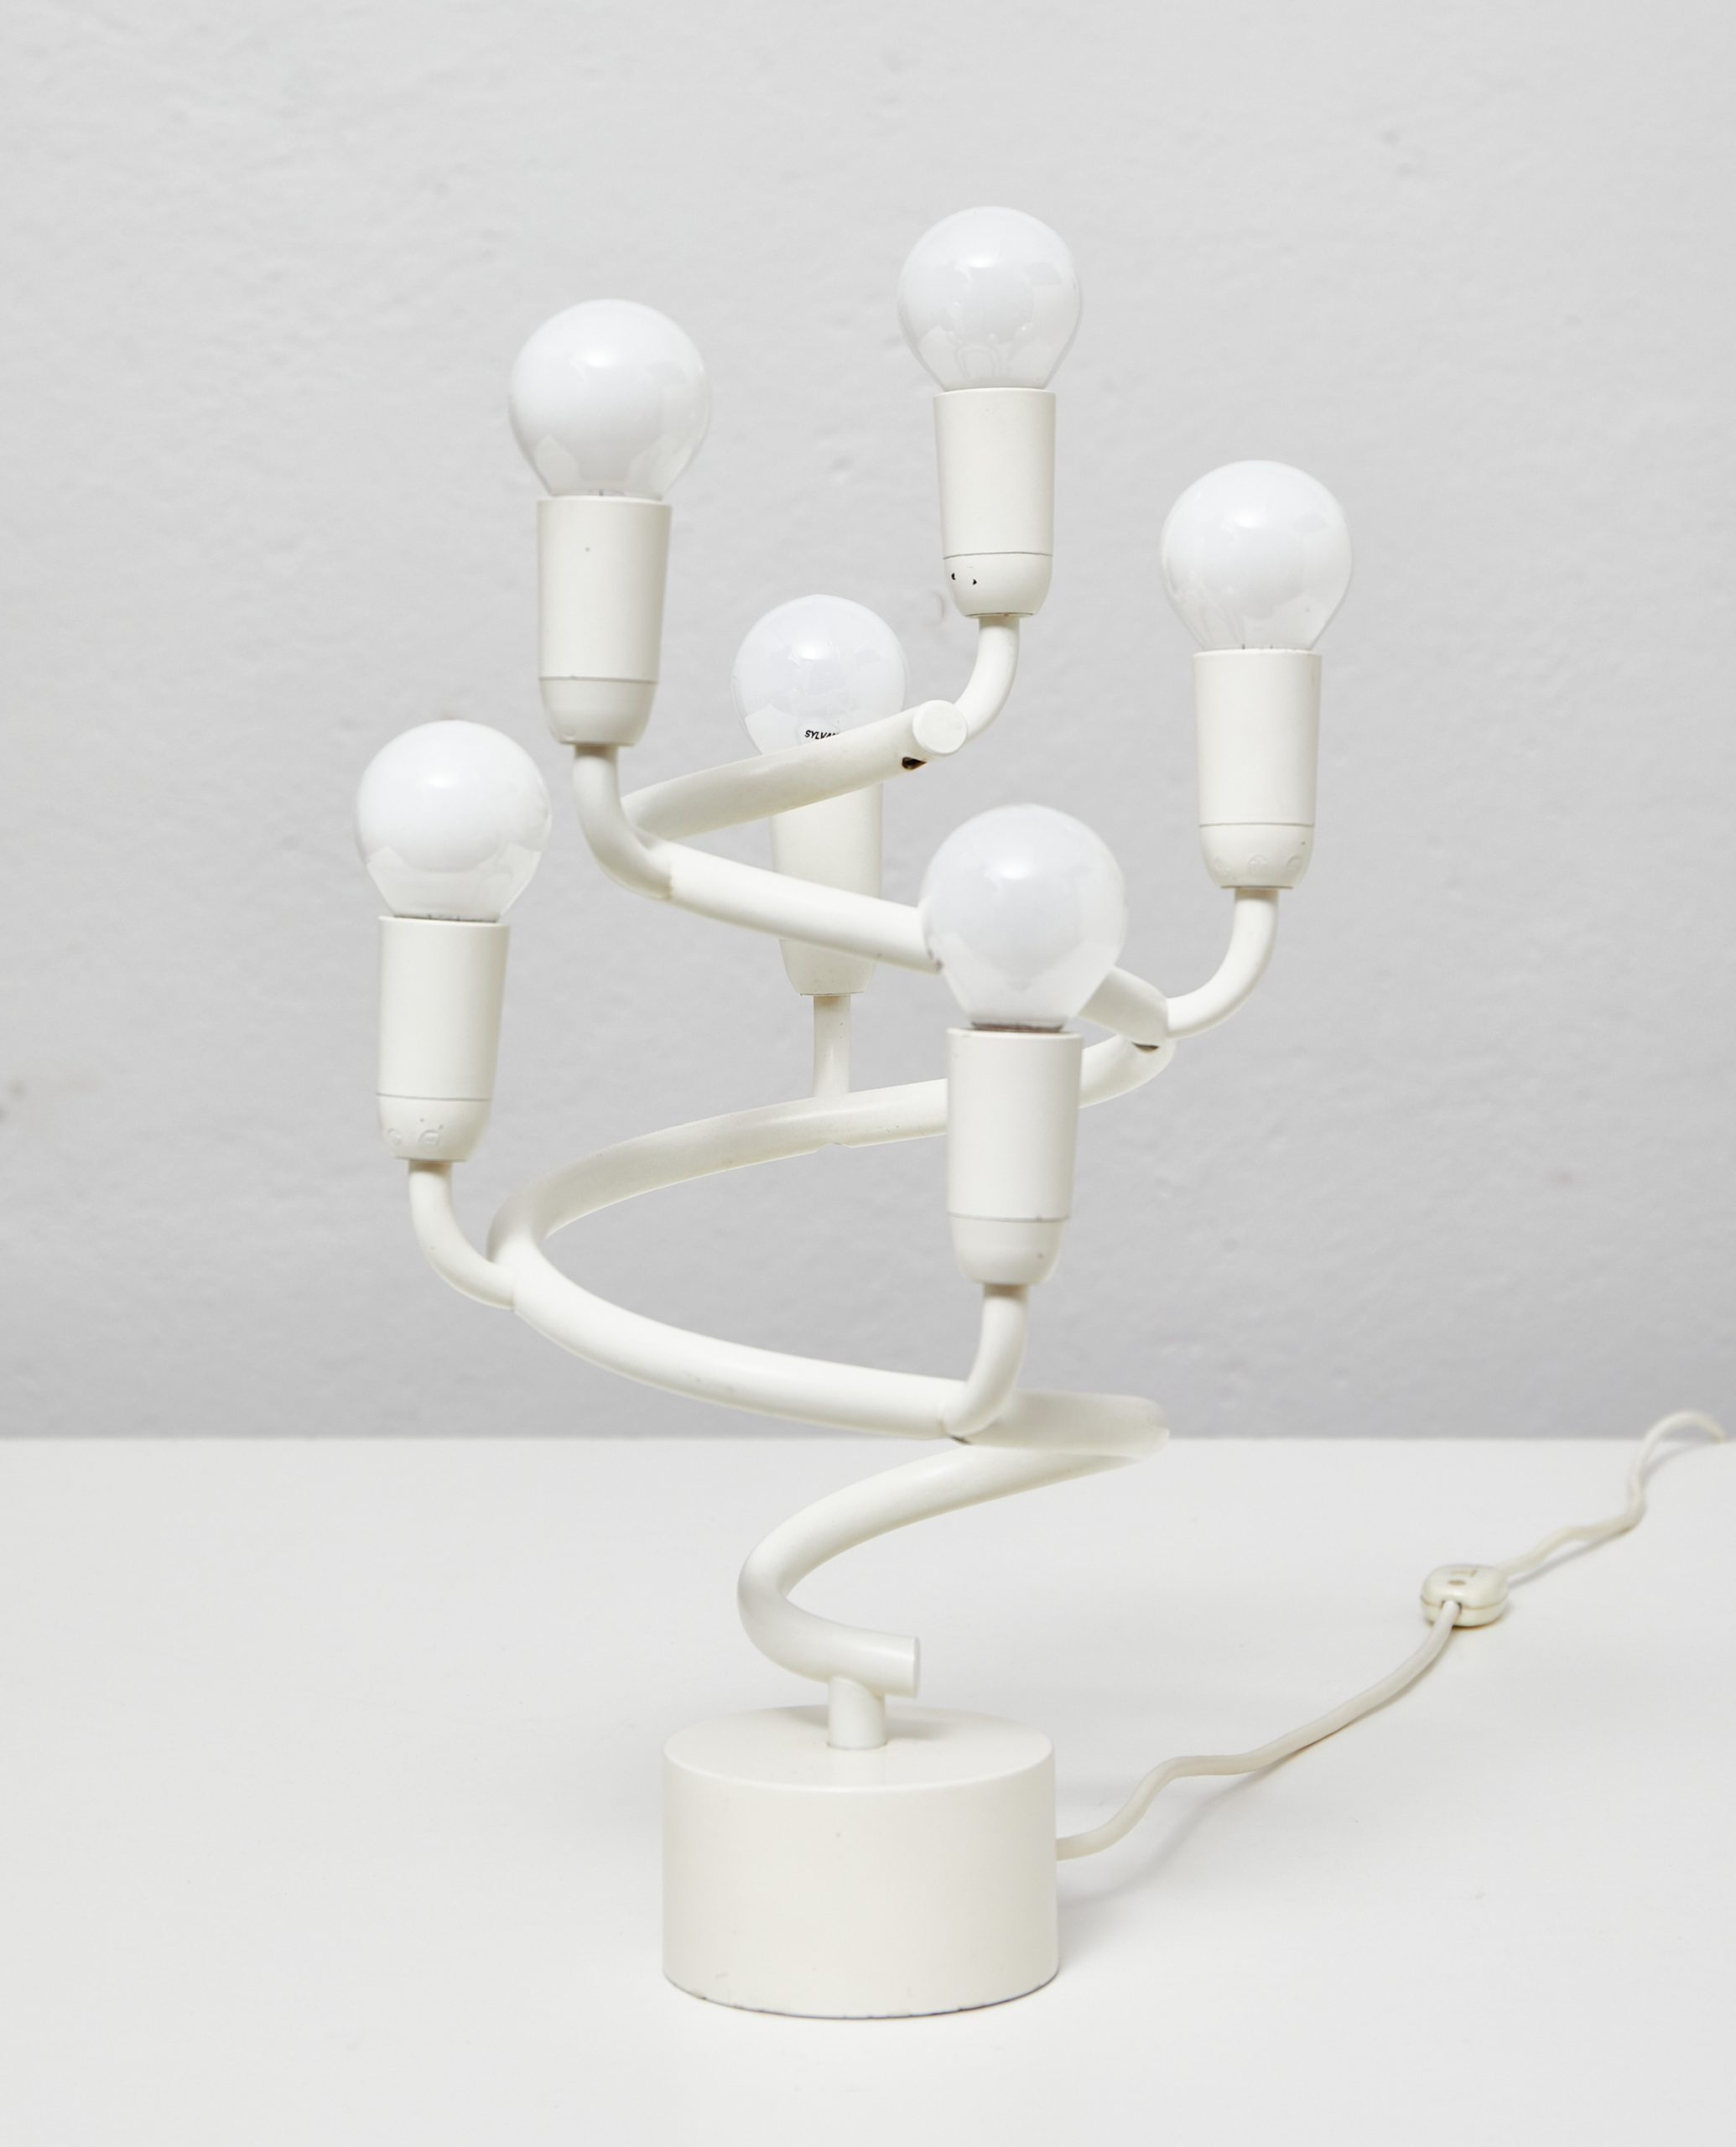 swiss-white-lacquered-metal-spiral-table-lamp-attributed-to-e-r-nele-image-05